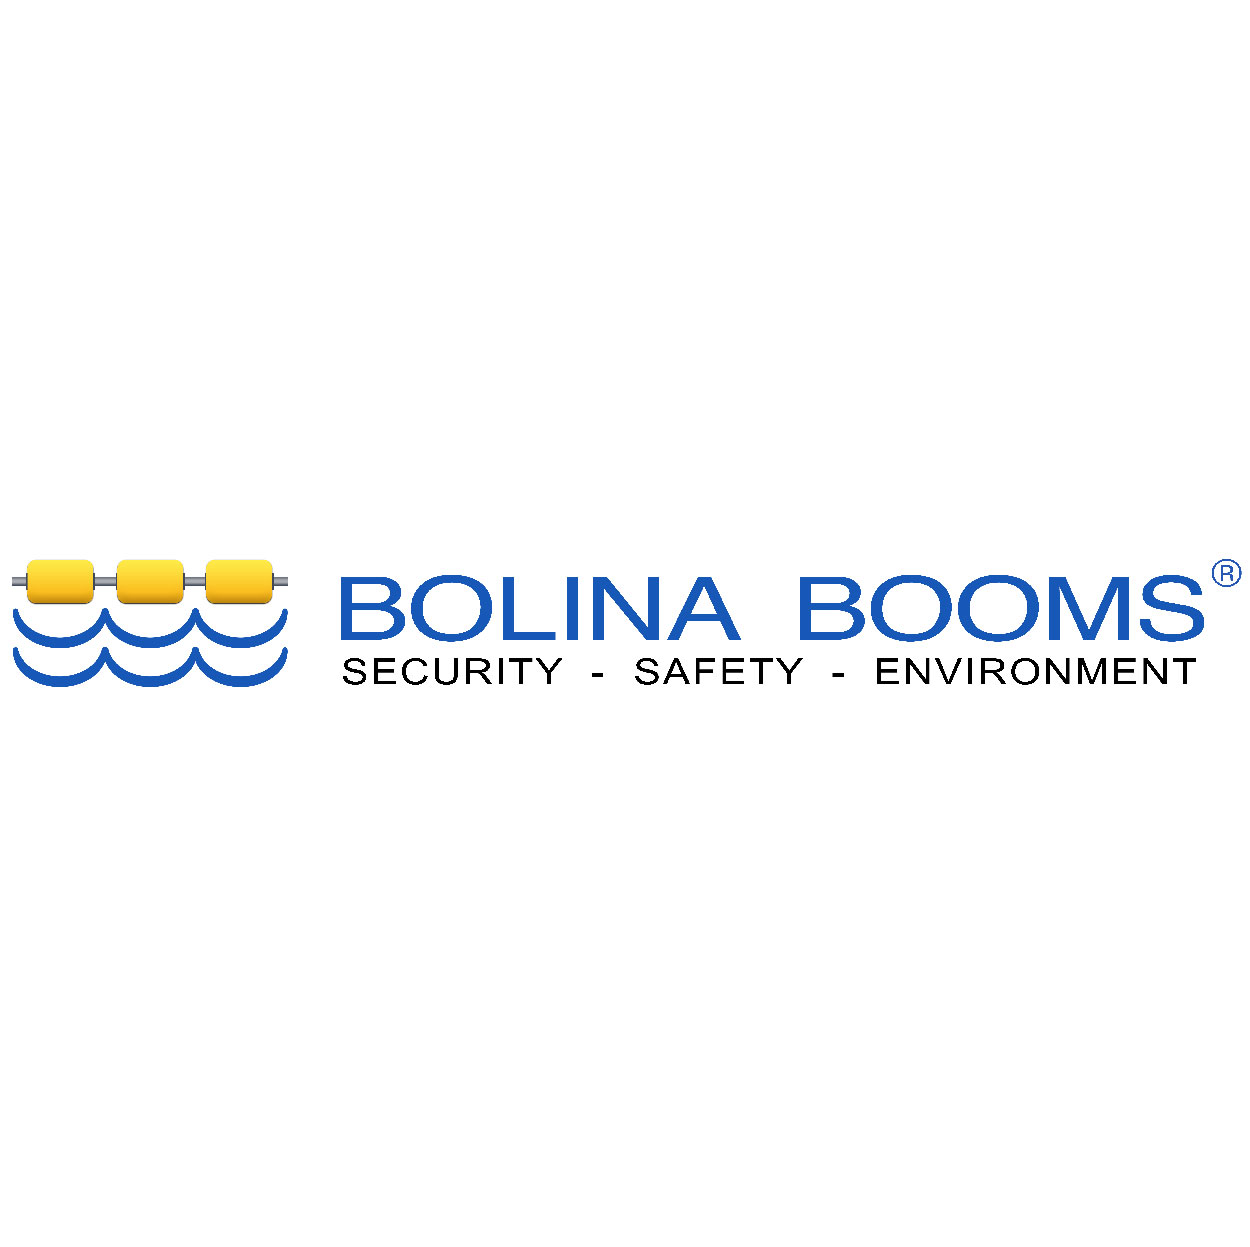 By Bolina Booms®